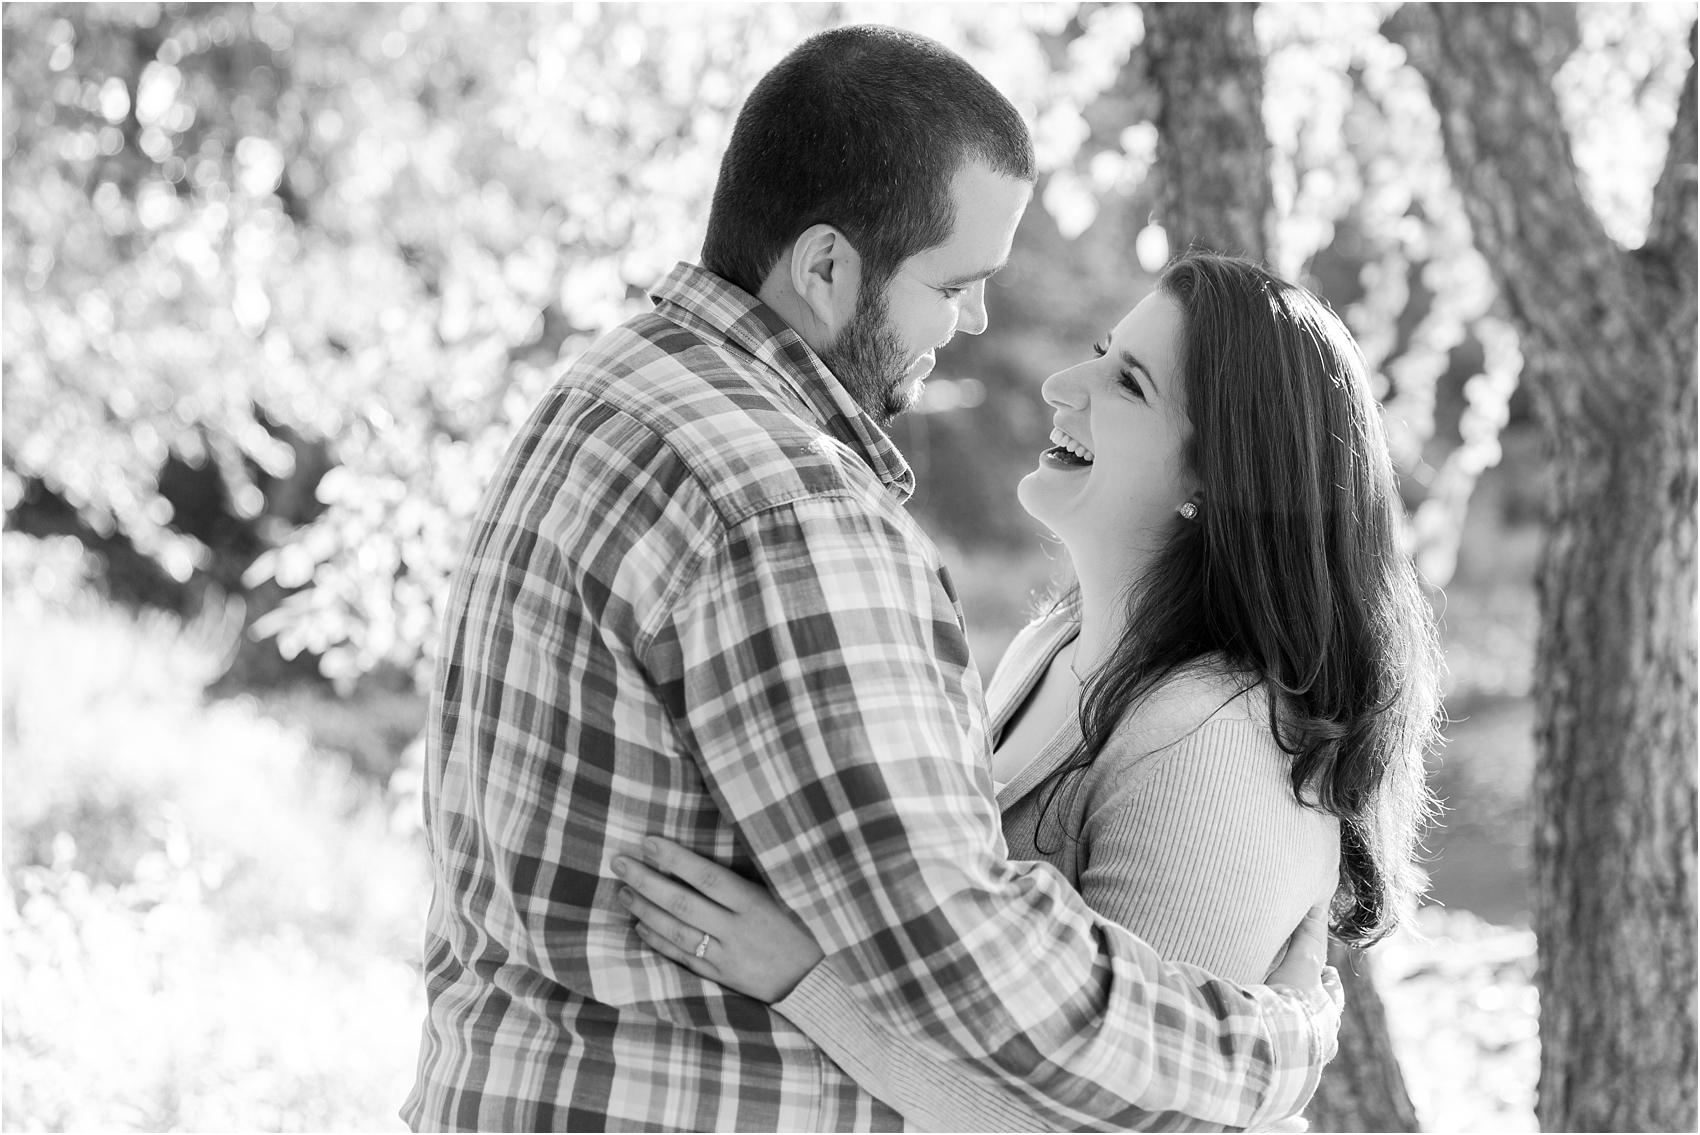 candid-romantic-summer-engagement-photos-at-hidden-lake-gardens-and-black-fire-winery-in-tipton-mi-by-courtney-carolyn-photography_0029.jpg